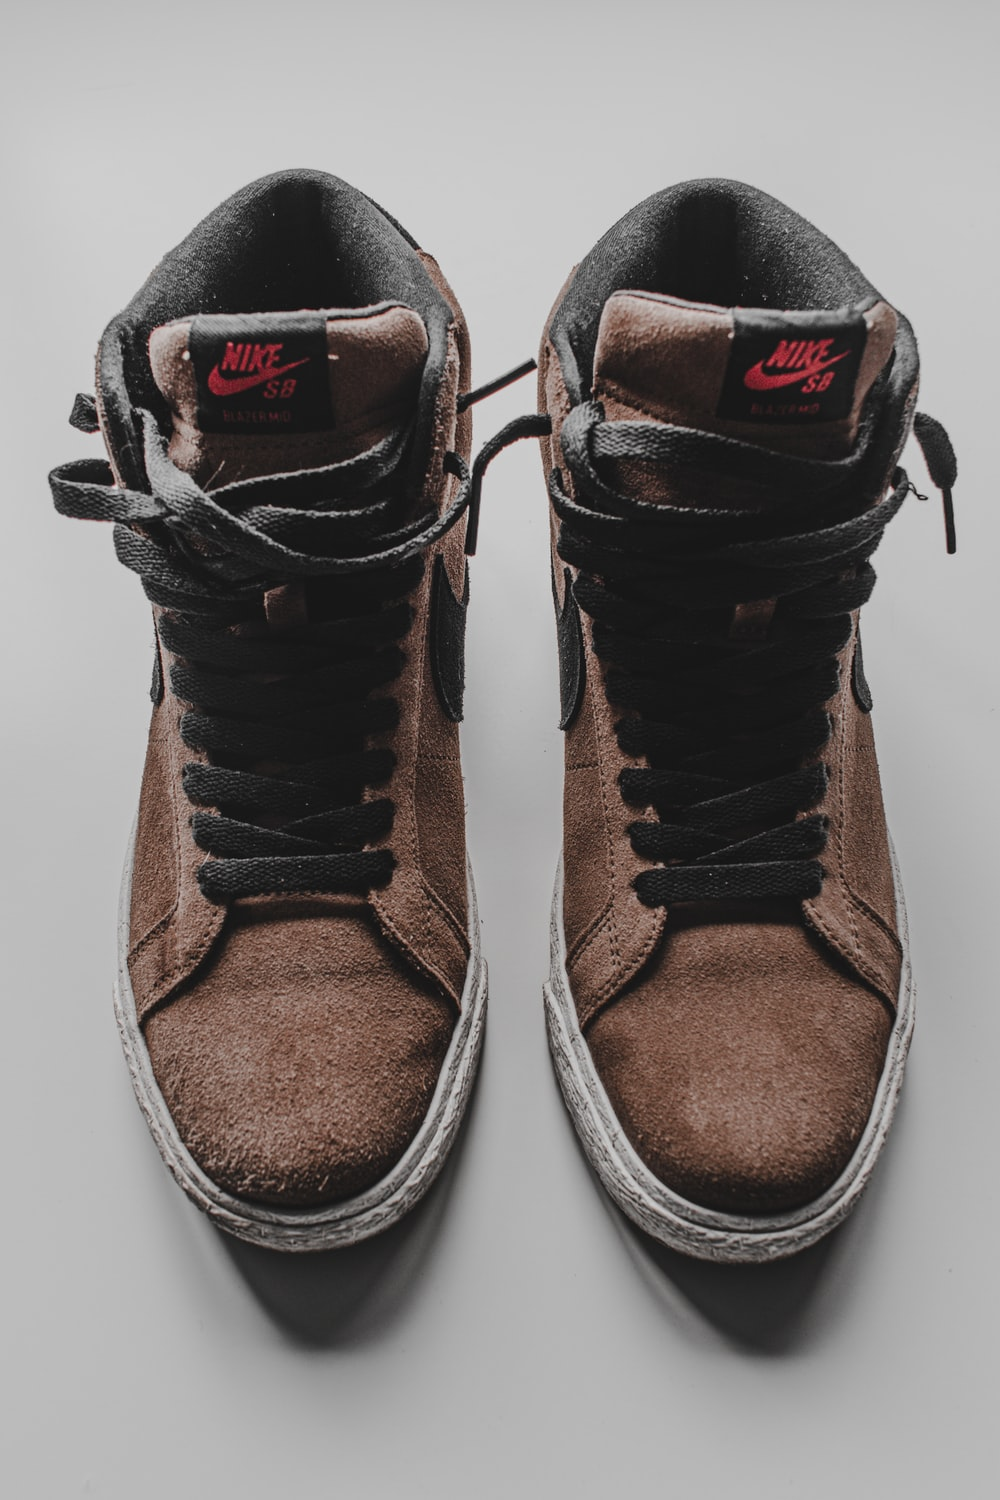 brown and black nike shoes